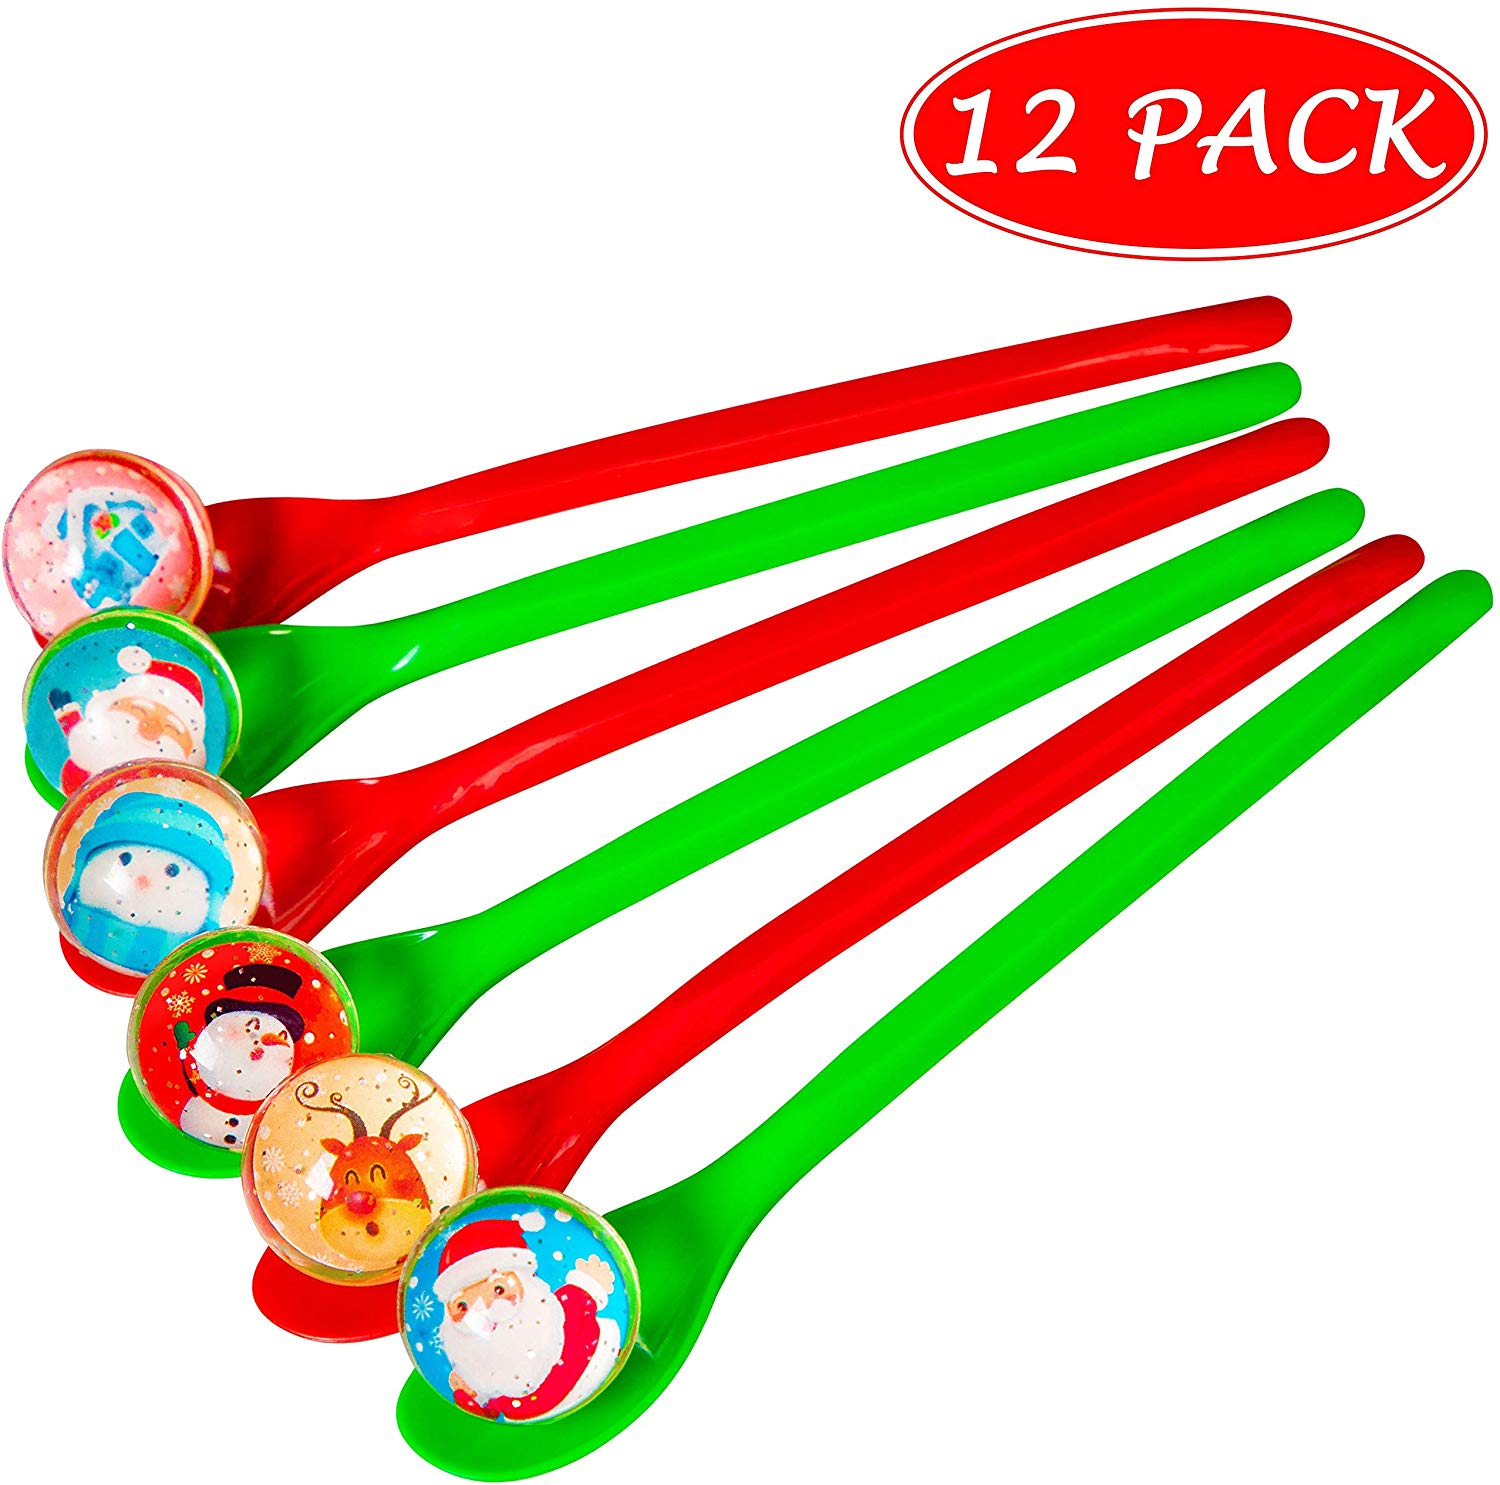 Christmas Game Bouncy Ball Spoon Relay Race Toy for Kids Adults Indoor  Outdoor Decorations Xmas/Holiday/Winter Party Supplies Favors.